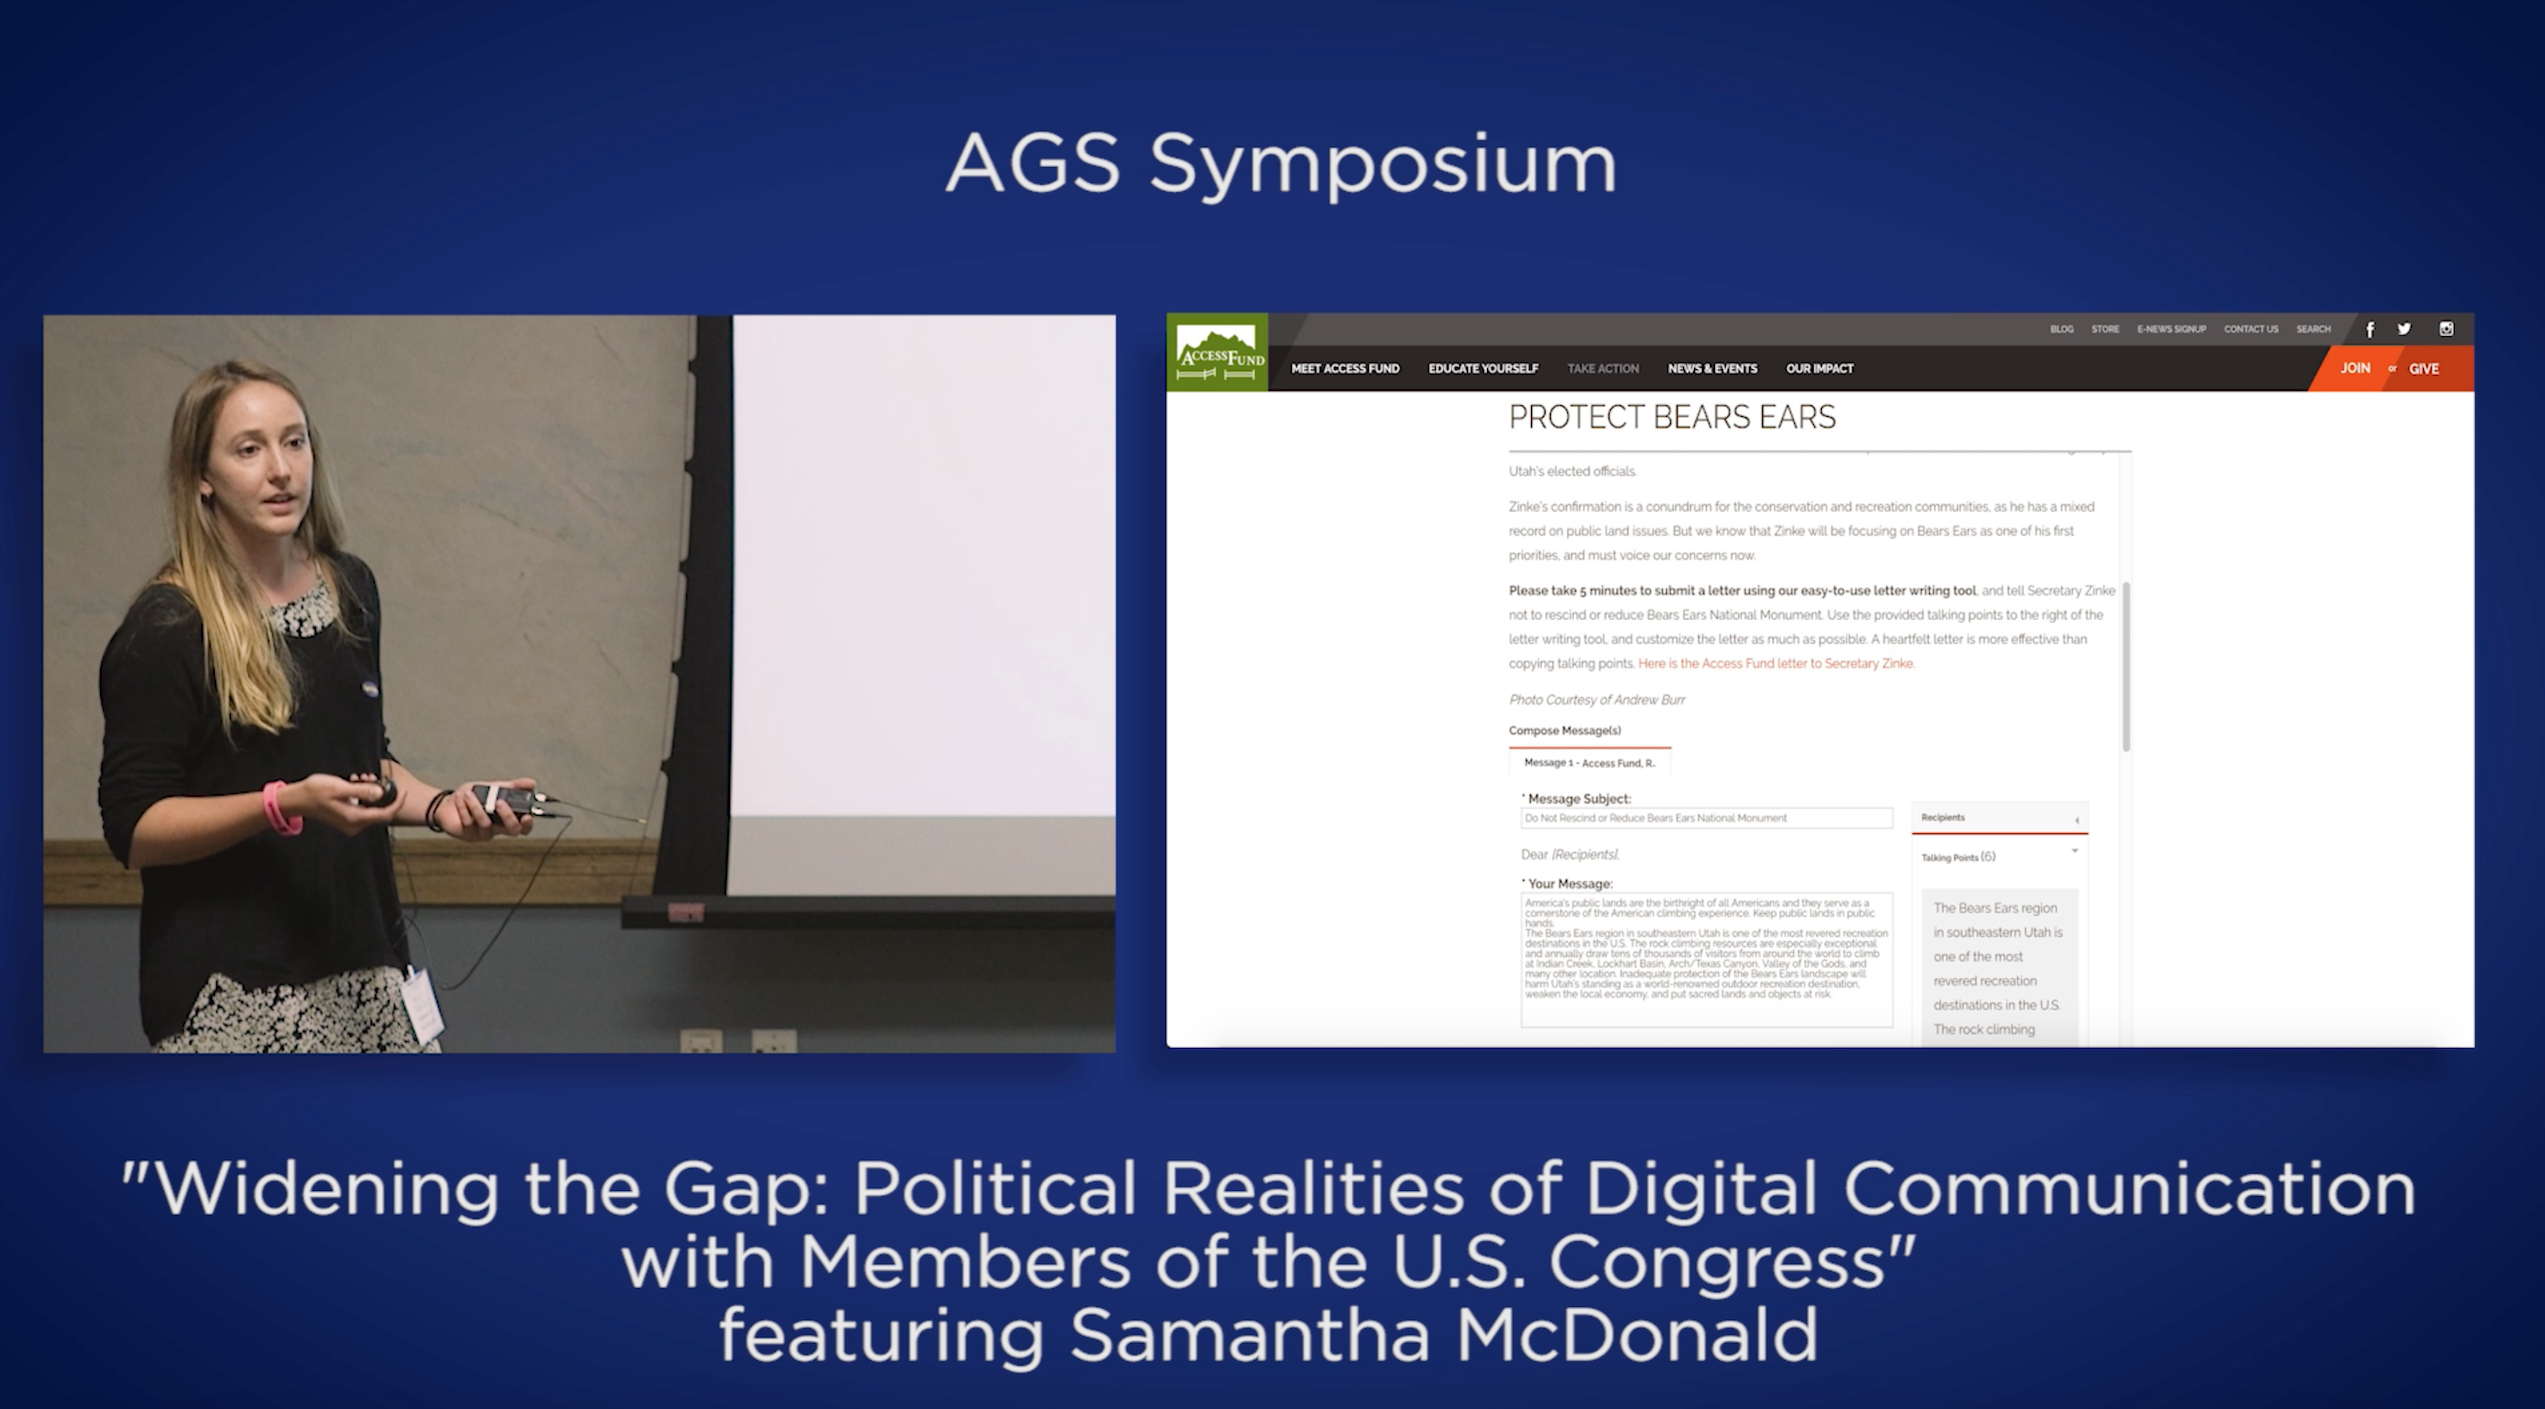 Screenshot of my talk at the AGS Symposium